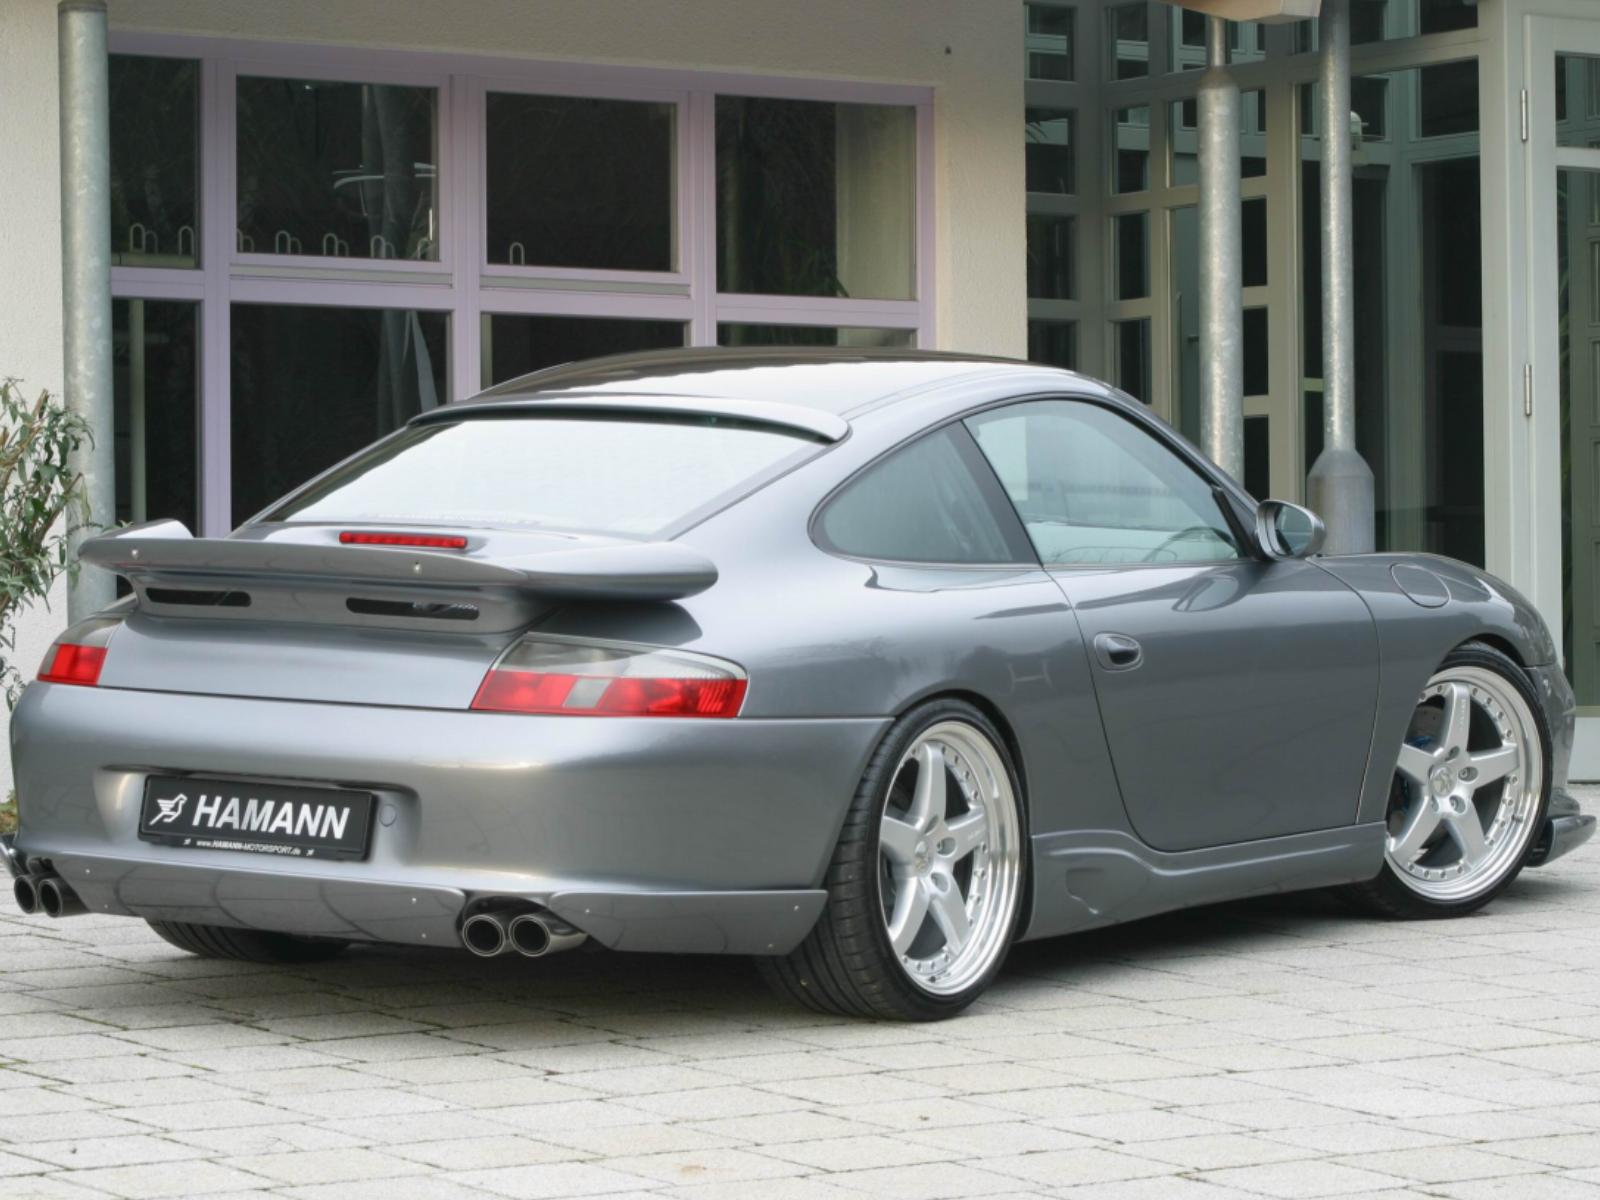 Hamann Porsche 911 Carrera photo 13791